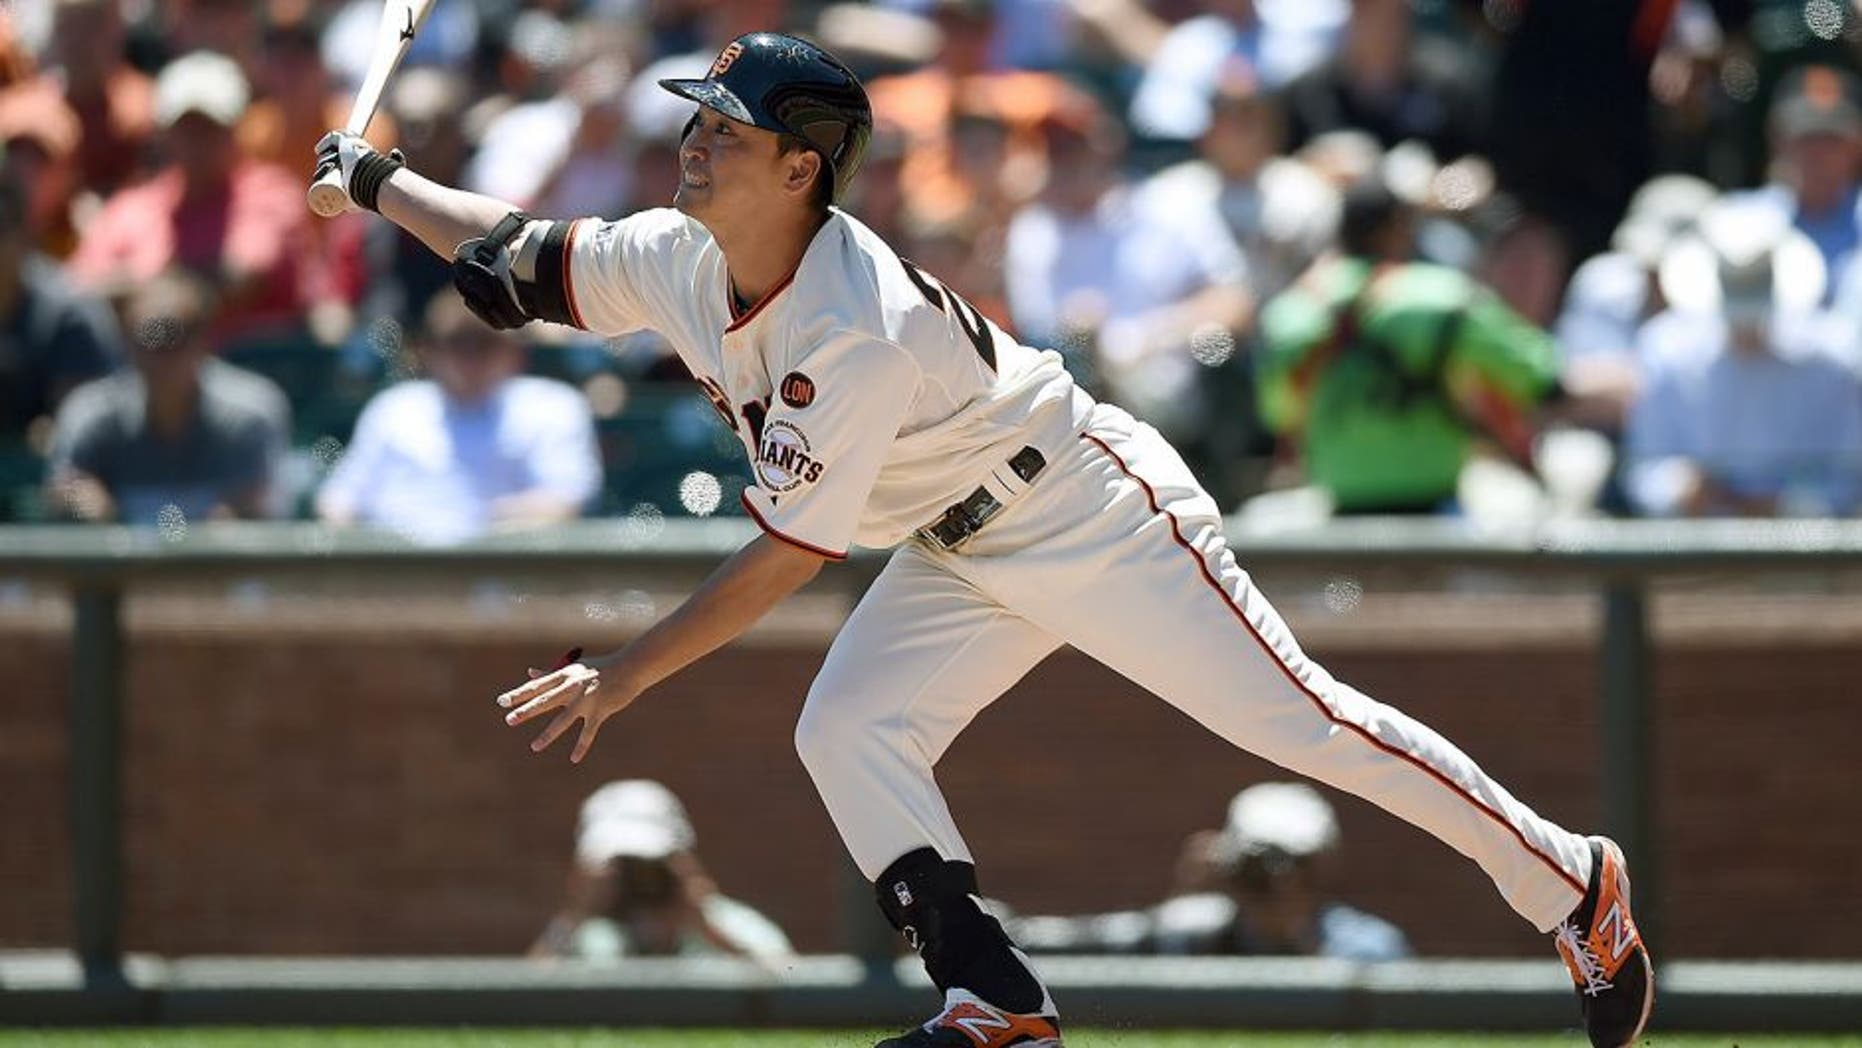 SAN FRANCISCO, CA - AUGUST 12: Nori Aoki #23 of the San Francisco Giants bats against the Houston Astros in the top of the third inning at AT&T Park on August 12, 2015 in San Francisco, California. (Photo by Thearon W. Henderson/Getty Images)